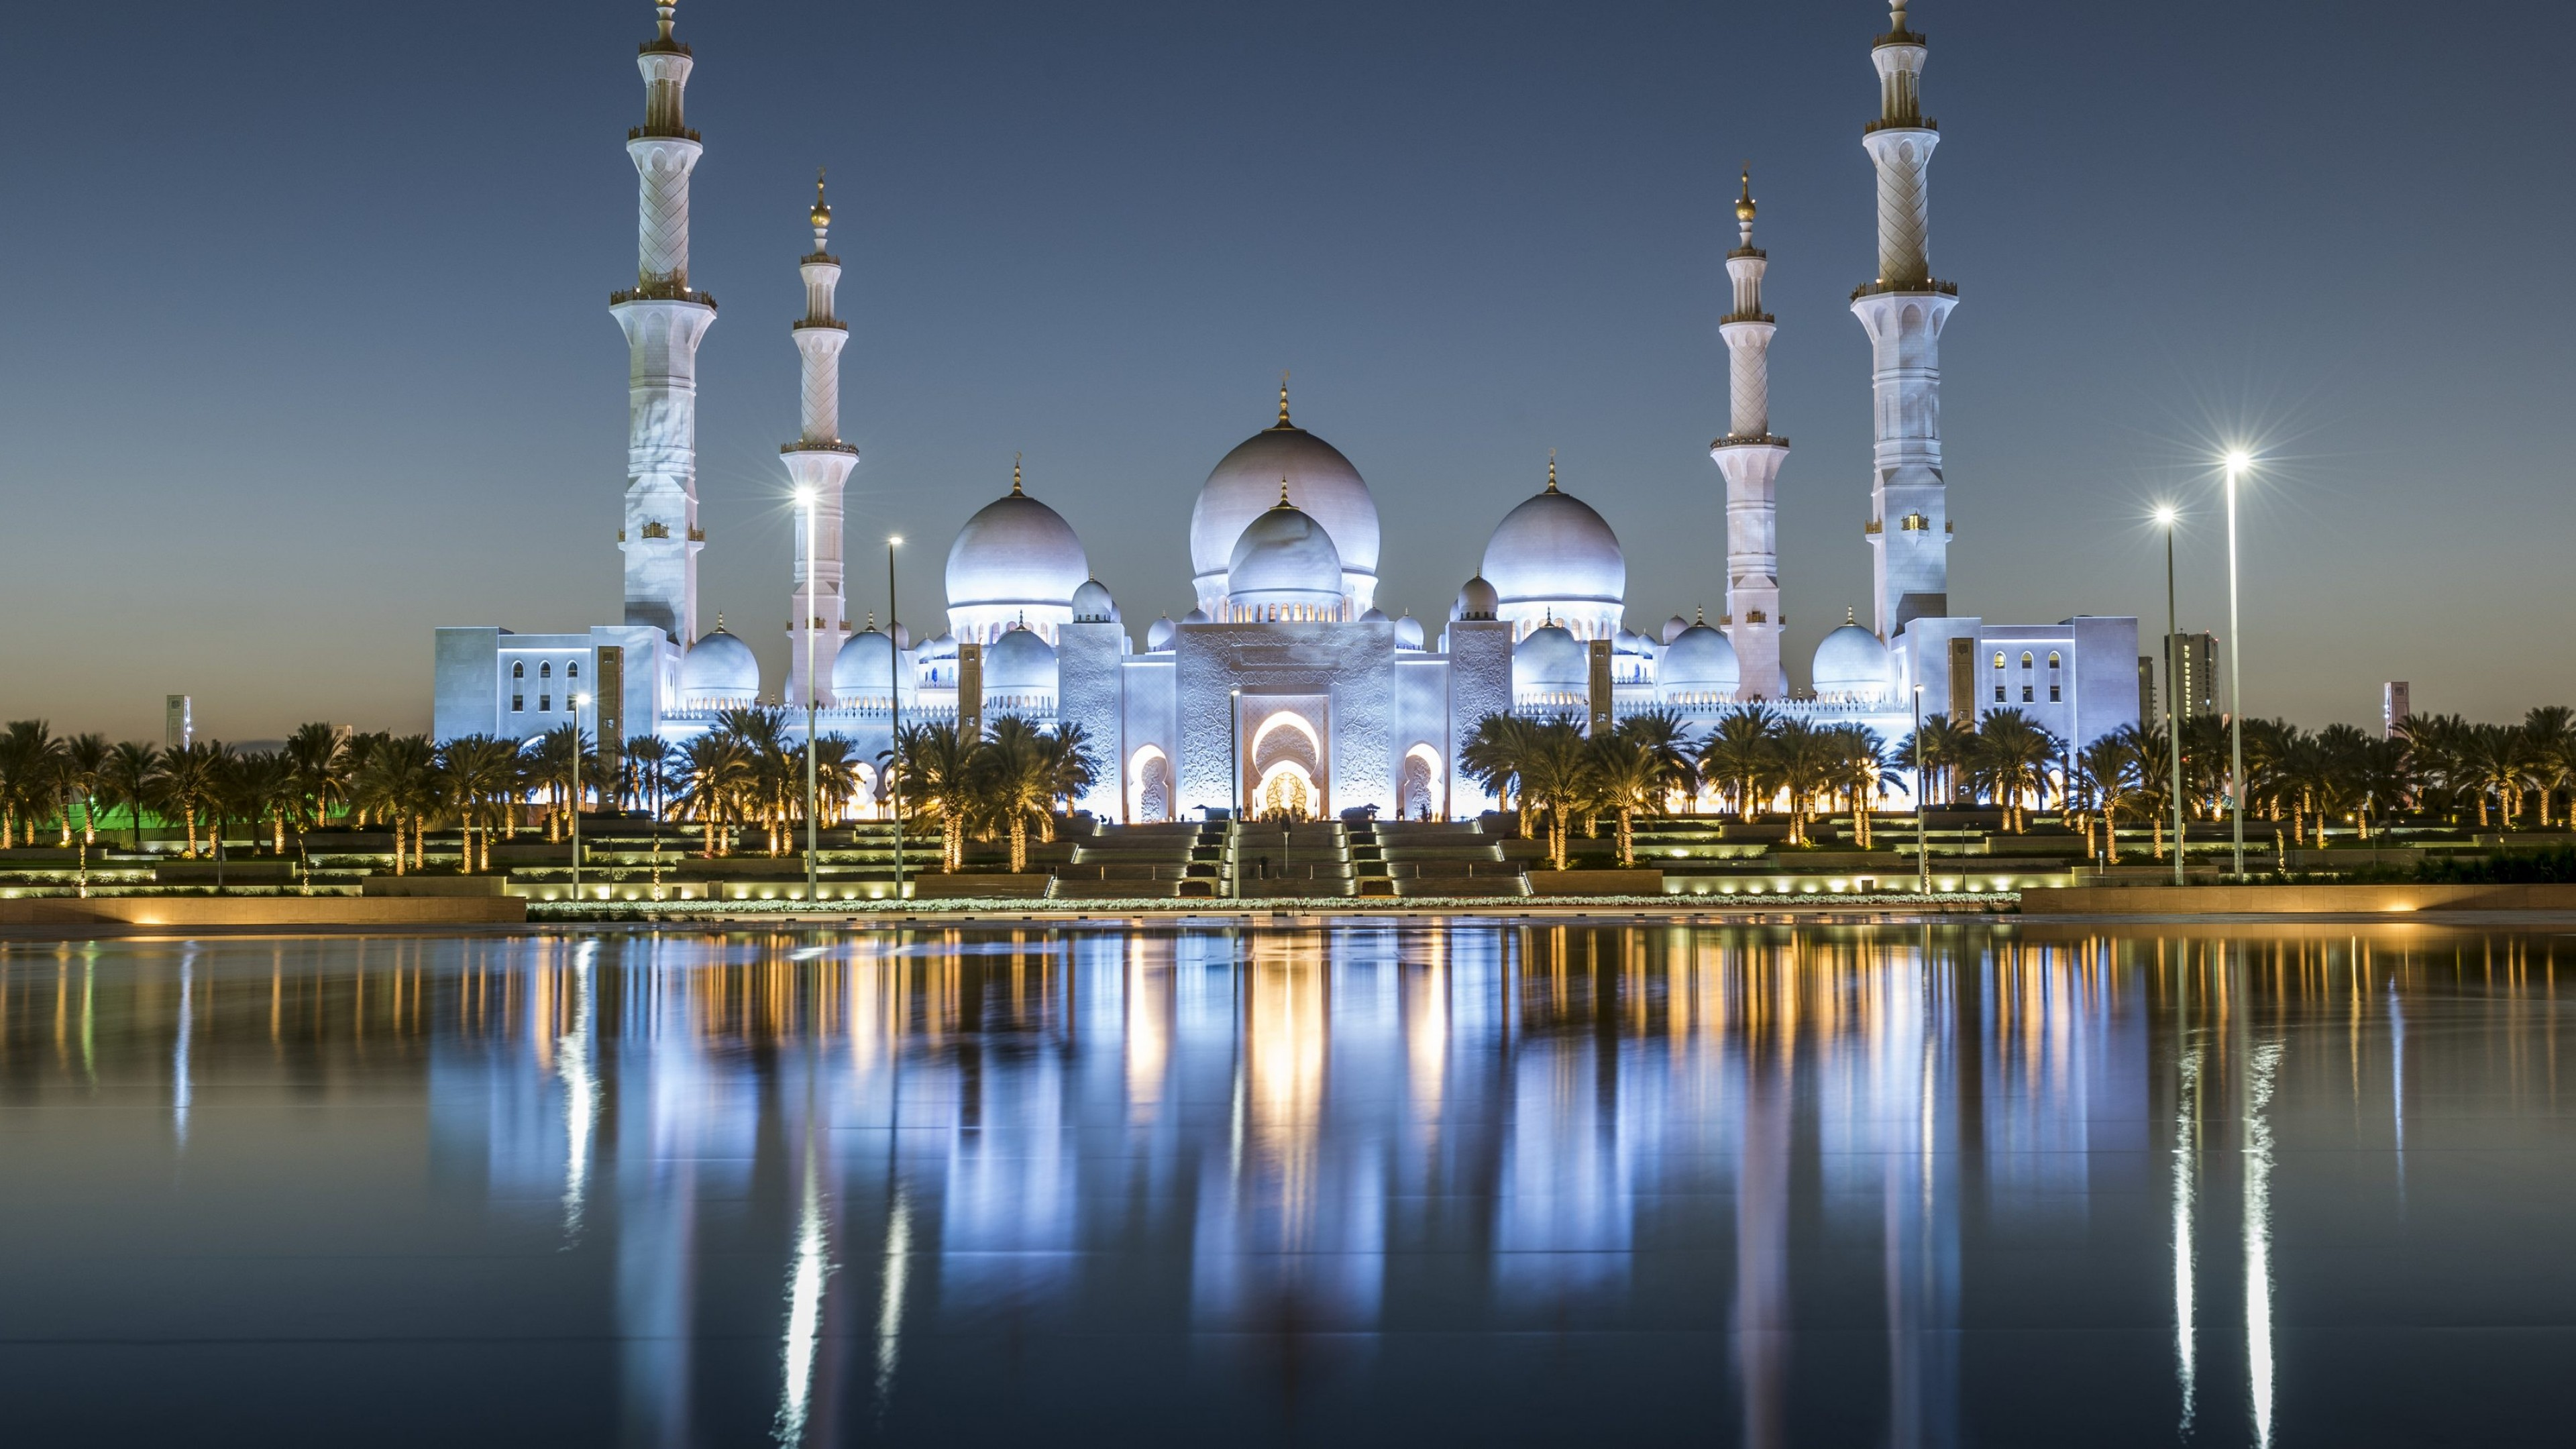 Sheikh Zayed Grand Mosque Center Wallpapers - Wallpaper Cave